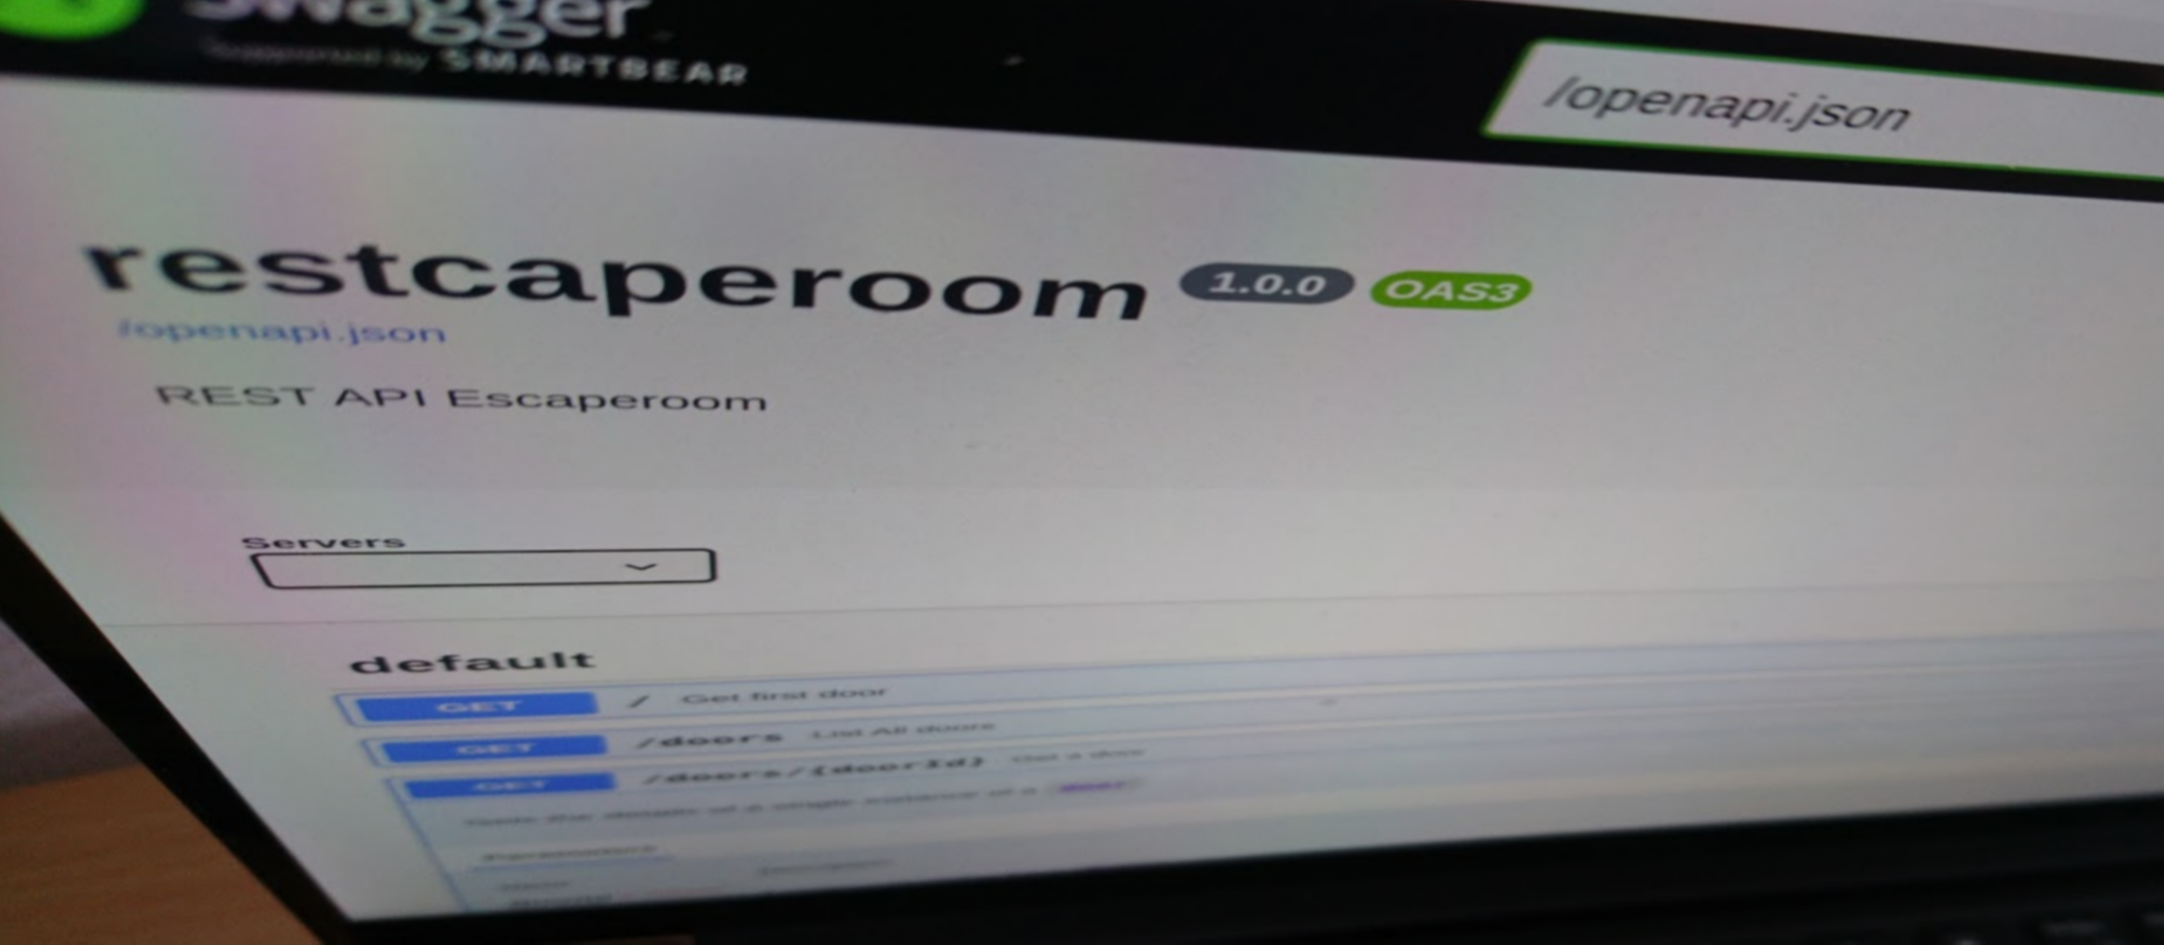 /restcaperoom-is-an-interactive-exercise-for-programmer-interviews-ao3o3u1n feature image